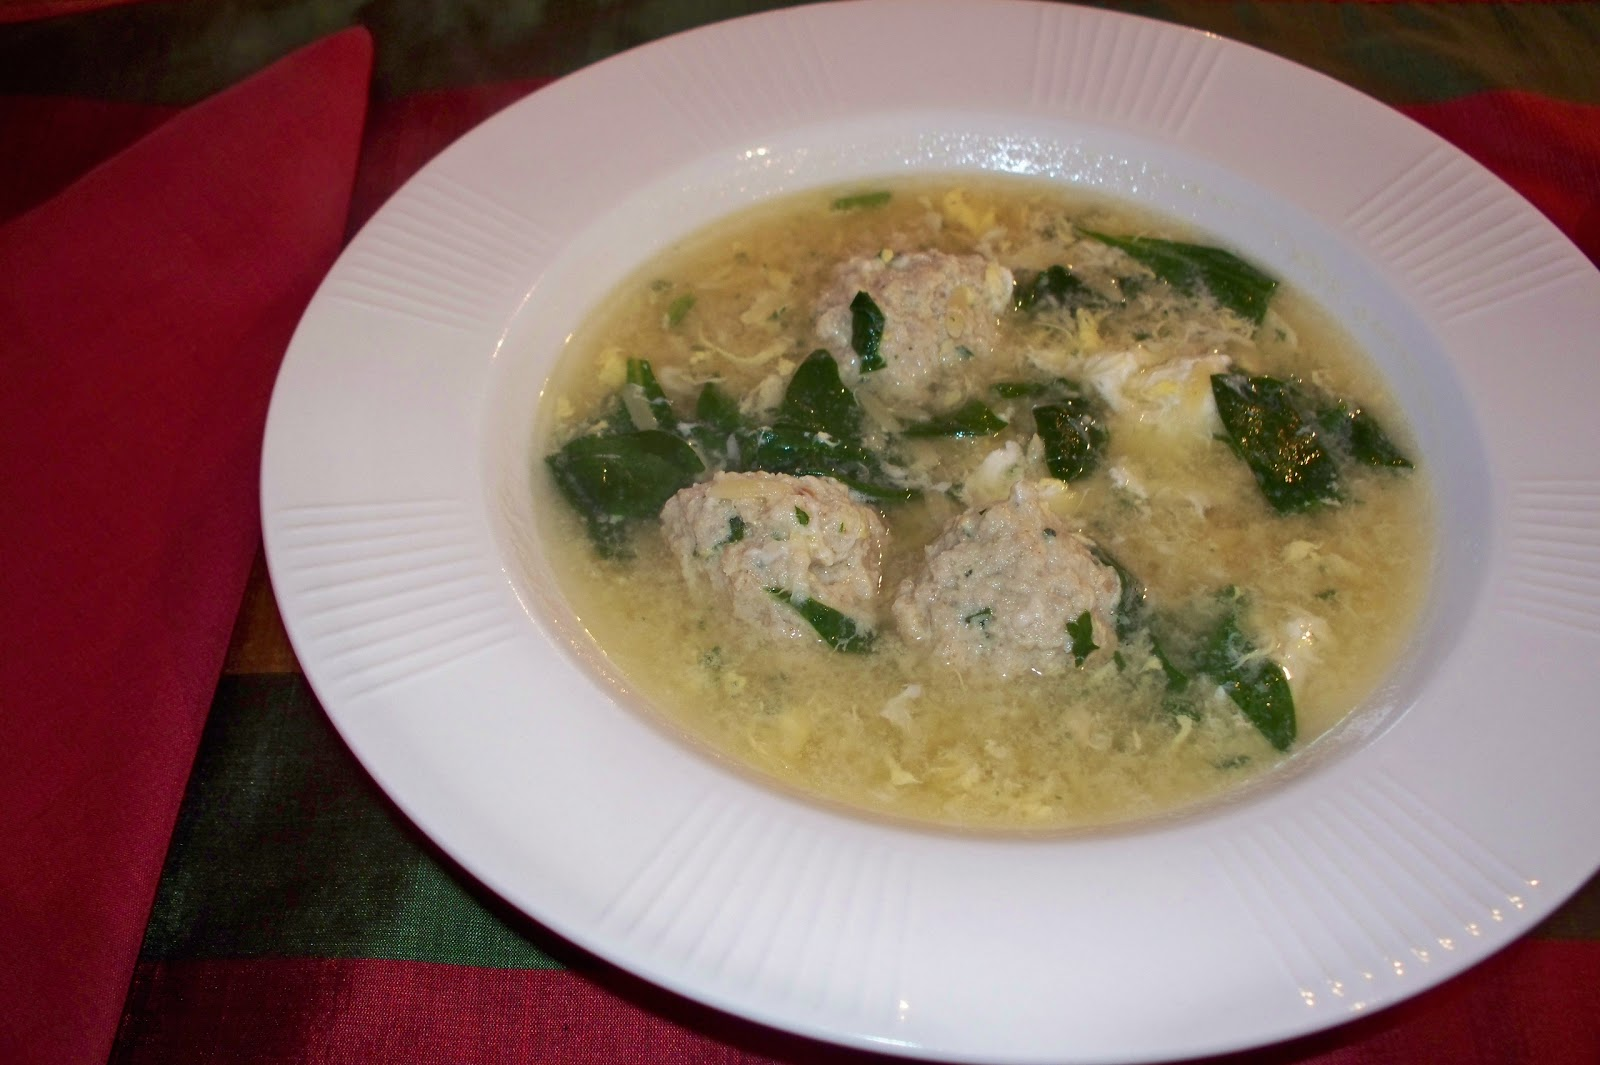 THE FOOD OF LOVE: WEDDING SOUP WITH STRACCIATELLA